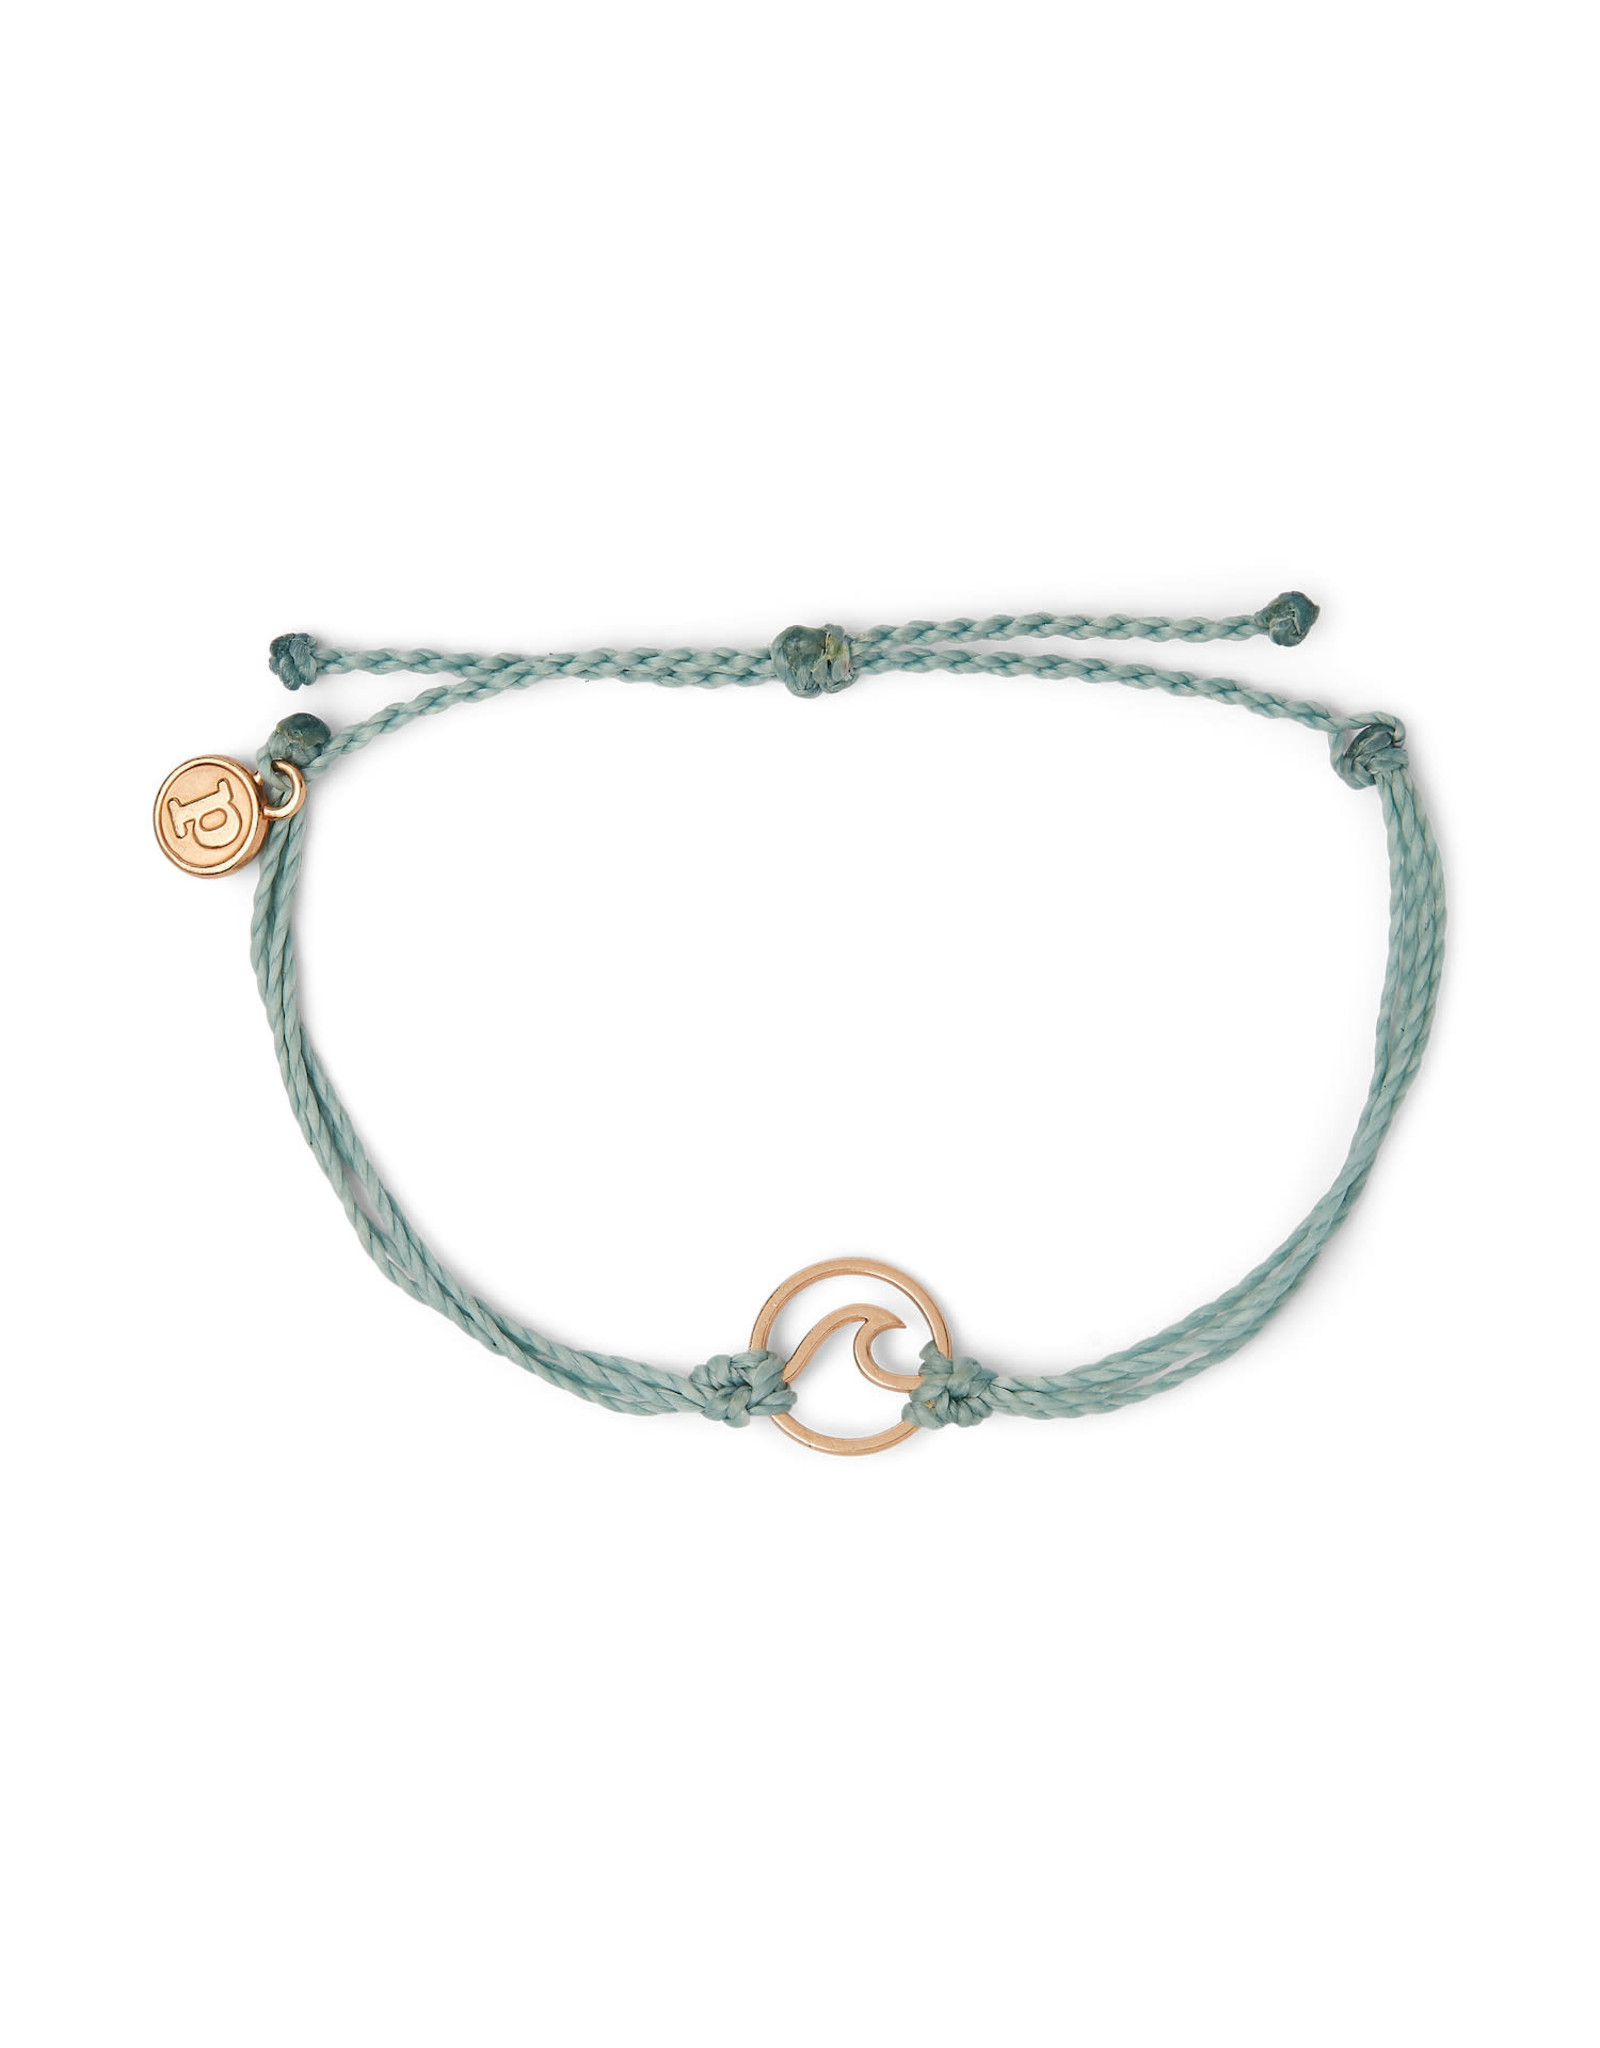 PURA VIDA BRACELET ROSE GOLD WAVE SMOKE